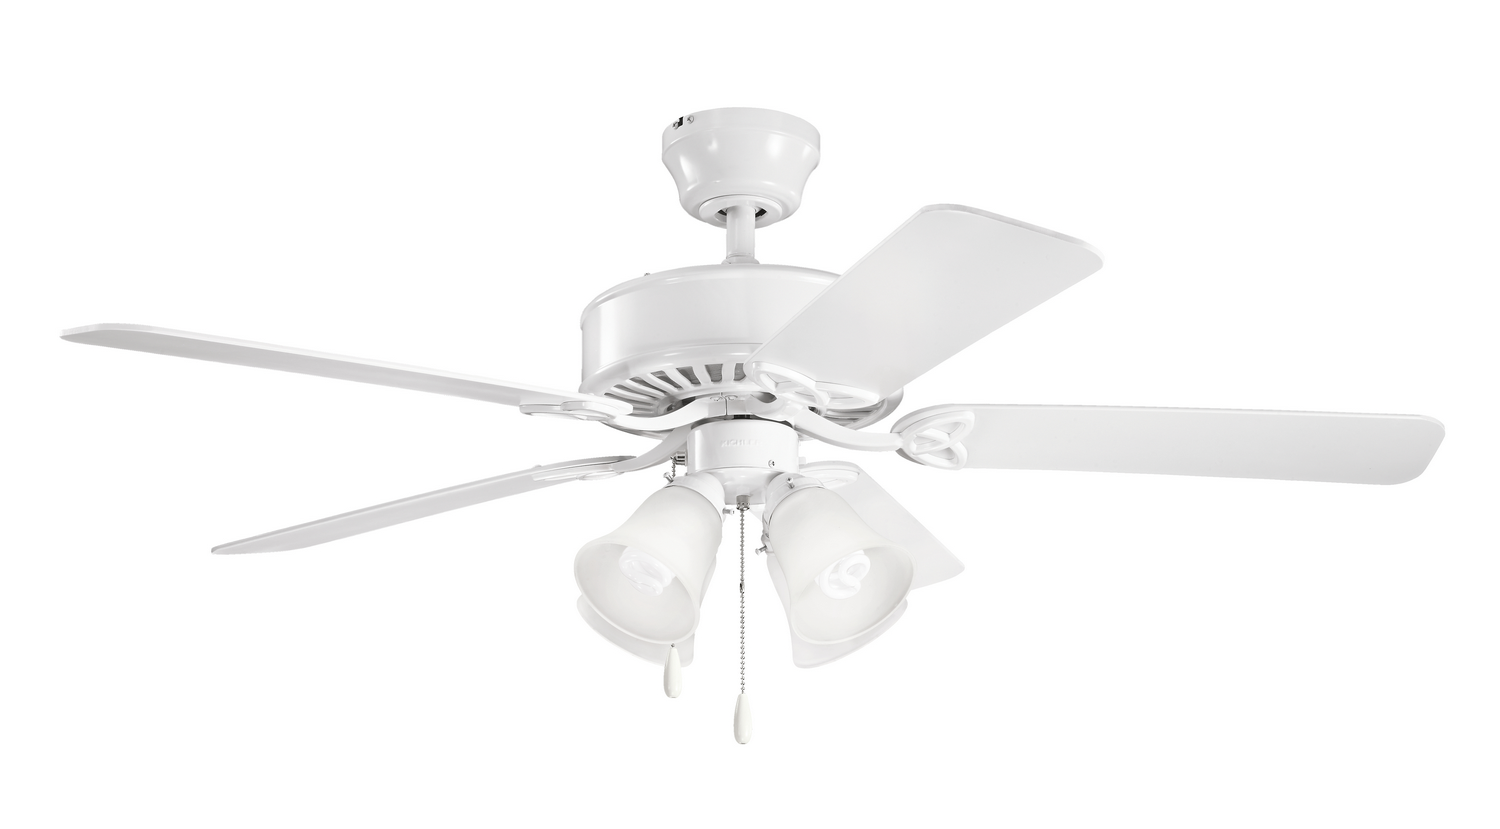 50 inchCeiling Fan from the Renew Premier collection by Kichler 339240WH